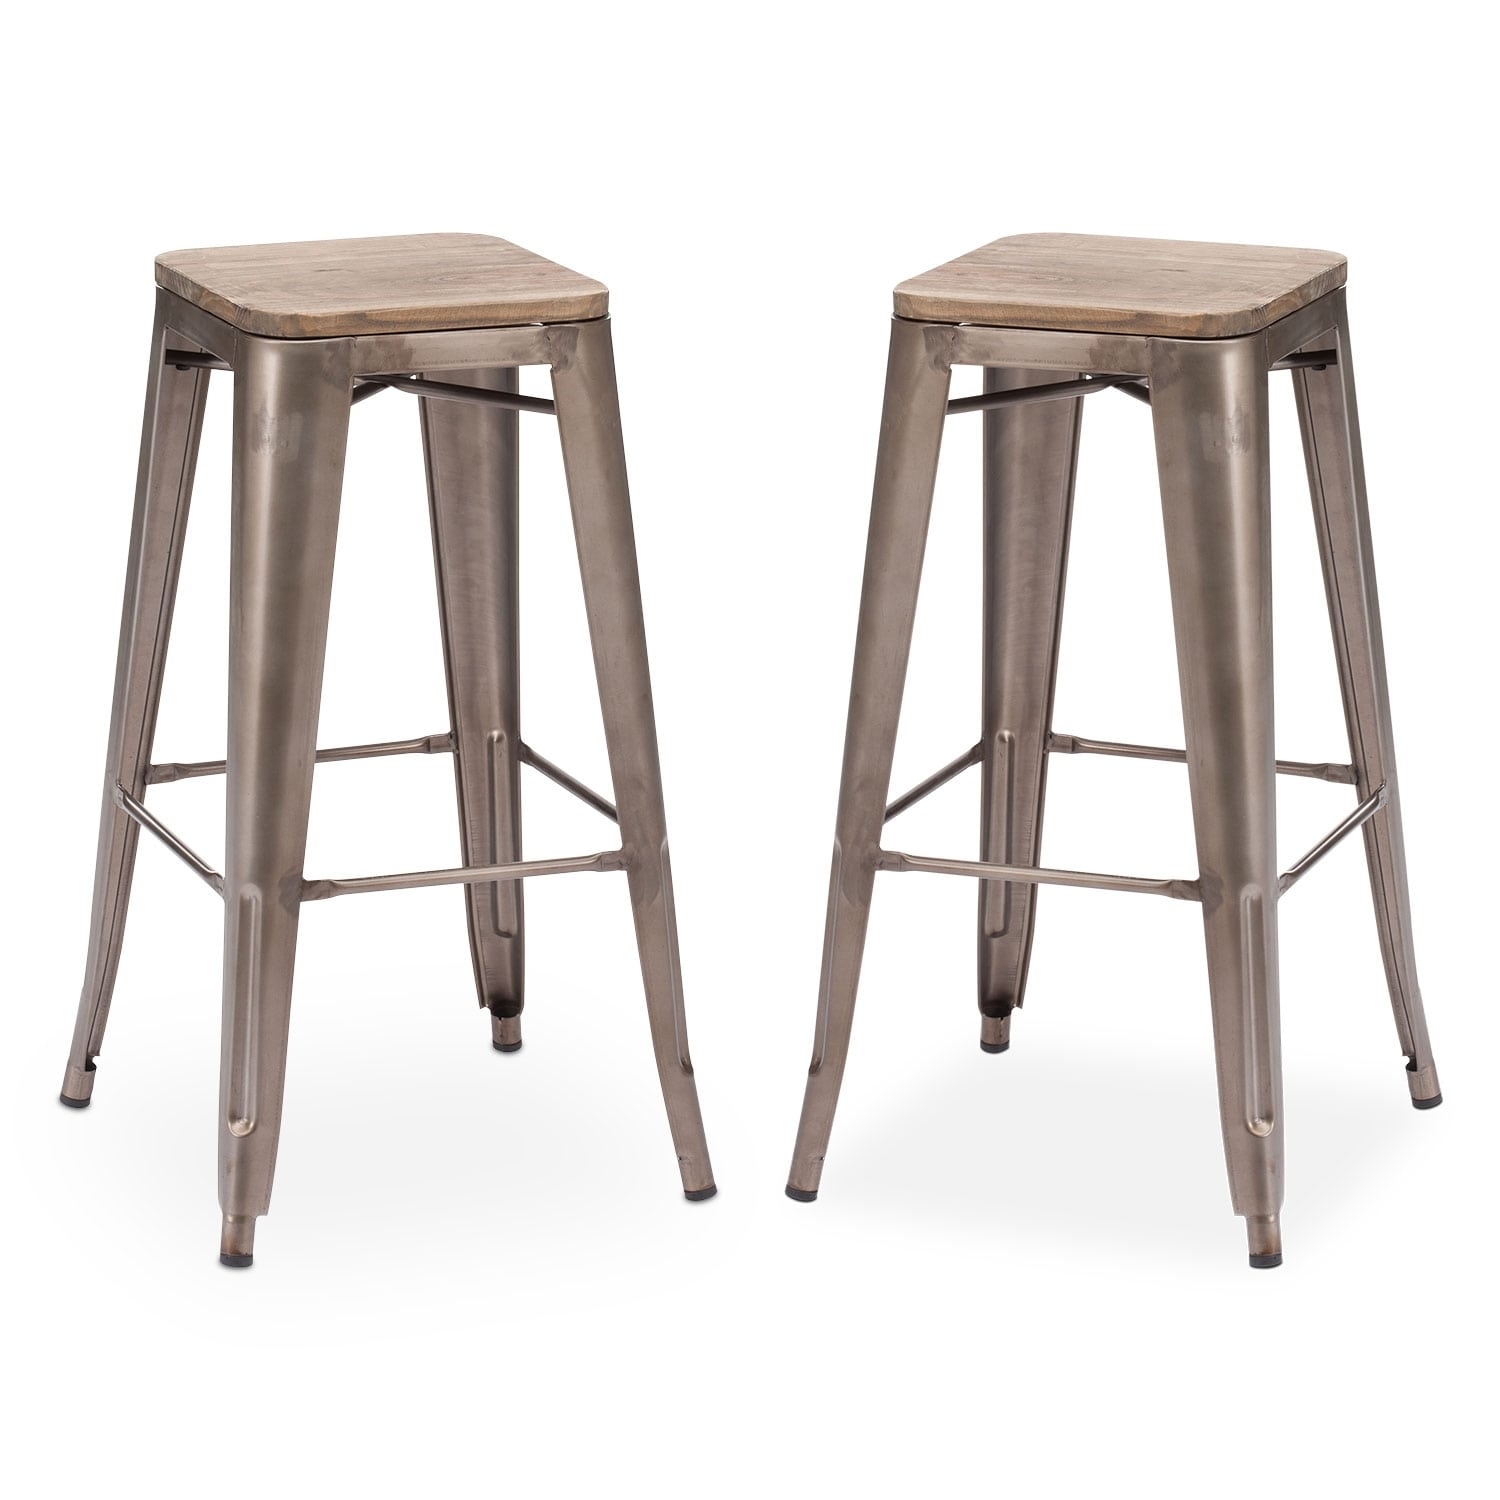 Dining Room Furniture - Rustica 2-Pack Barstools